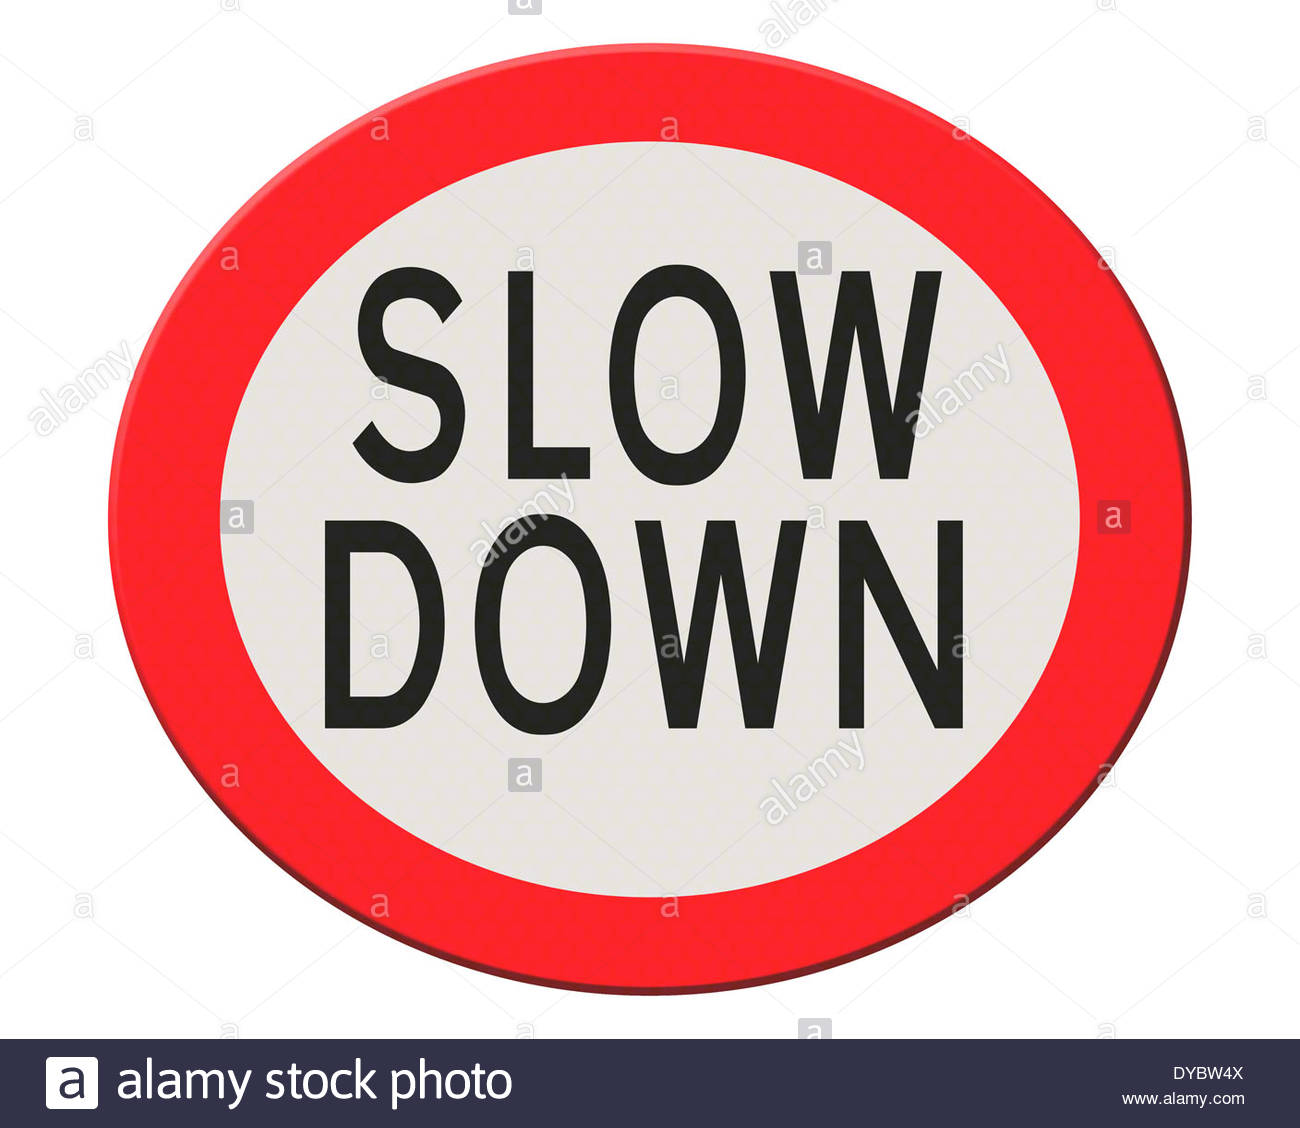 Digital composition - Slow down - Stock Image